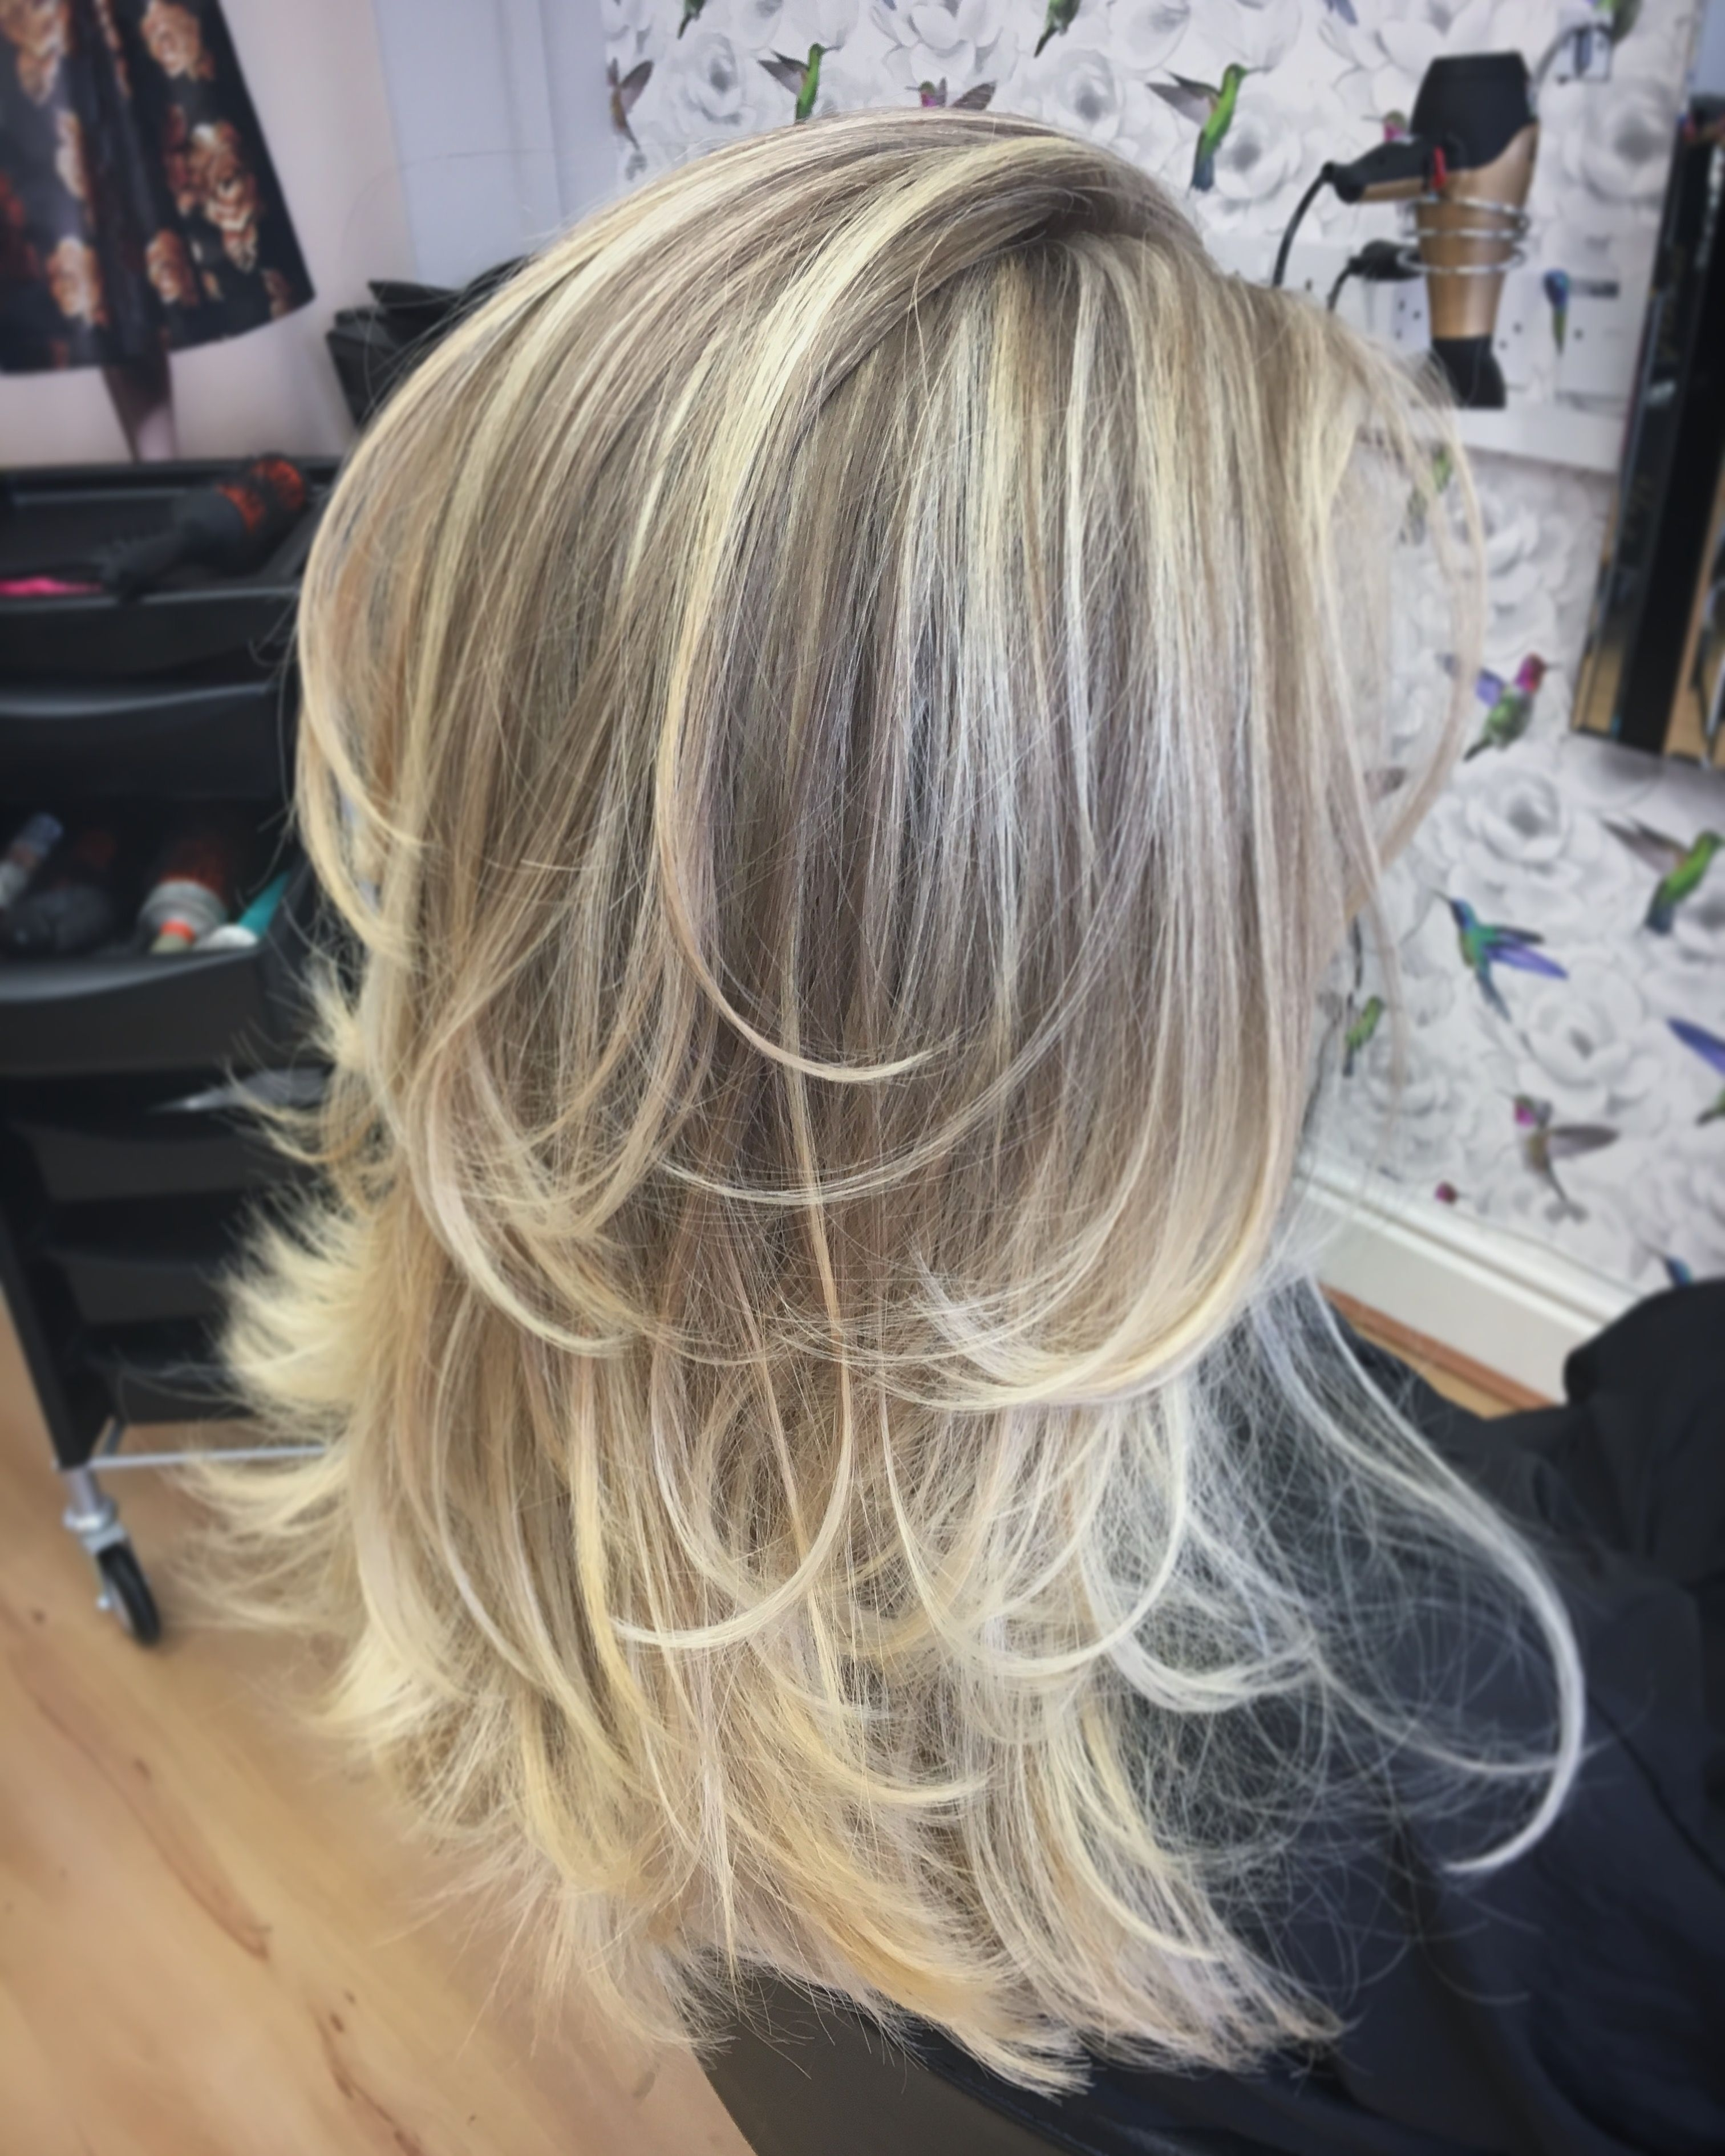 Famous Brown Blonde Layers Hairstyles Within Long Layers, Blonde Balayage, Blonde Highlights, Ash Blonde, Layers (View 10 of 20)